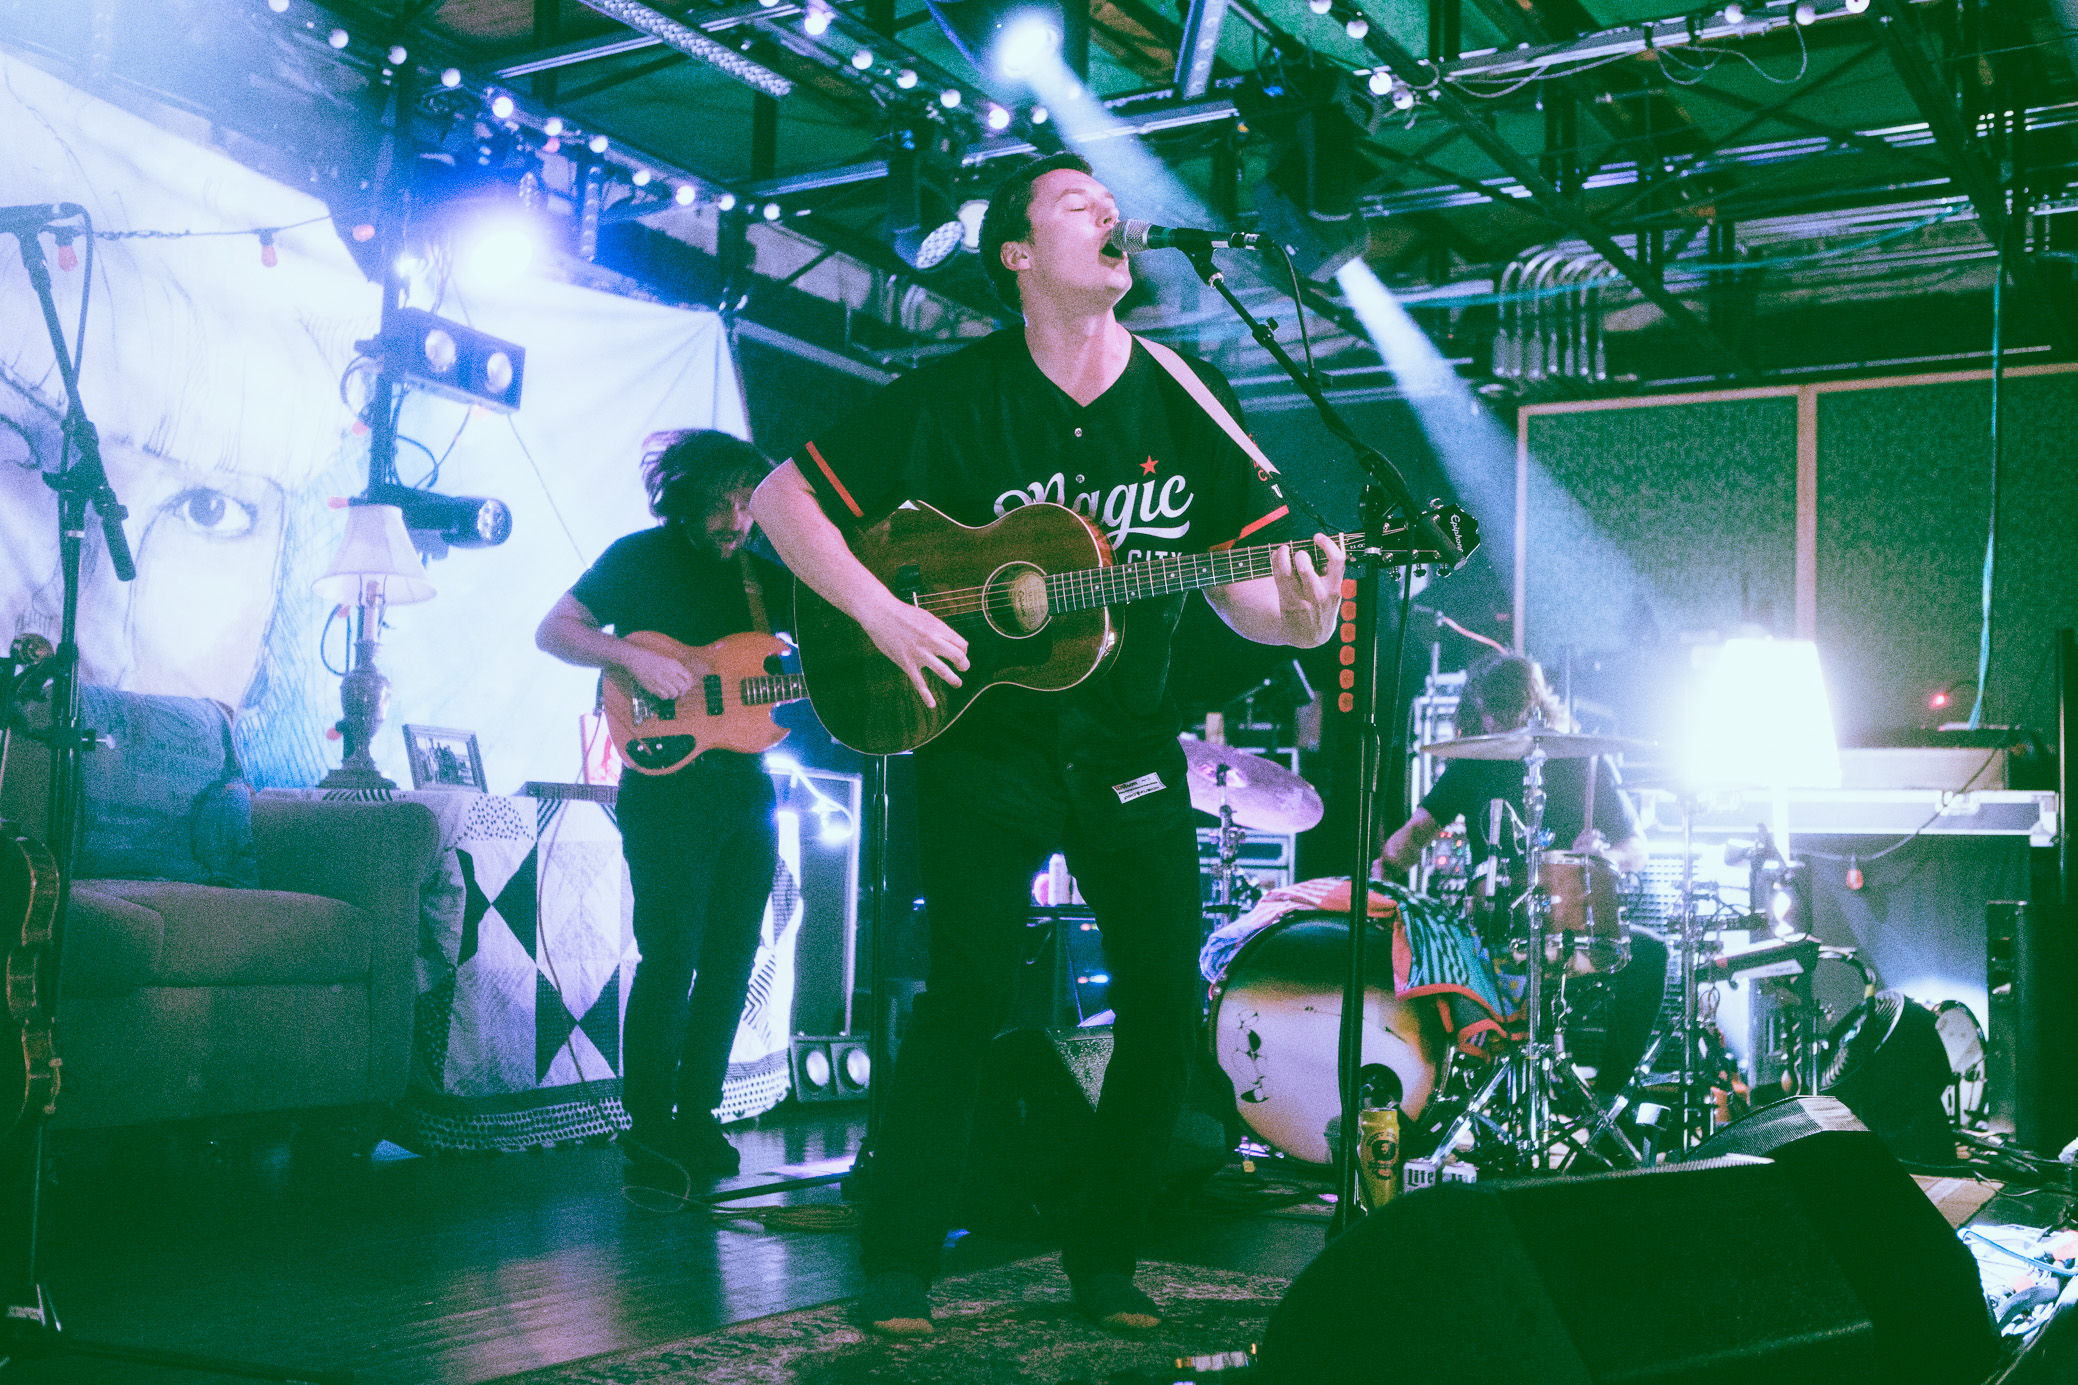 The Front Bottoms perform in concert at Saturn Birmingham in Birmingham, Alabama on May 30th, 2018. (Photo by David A. Smith/DSmithScenes)